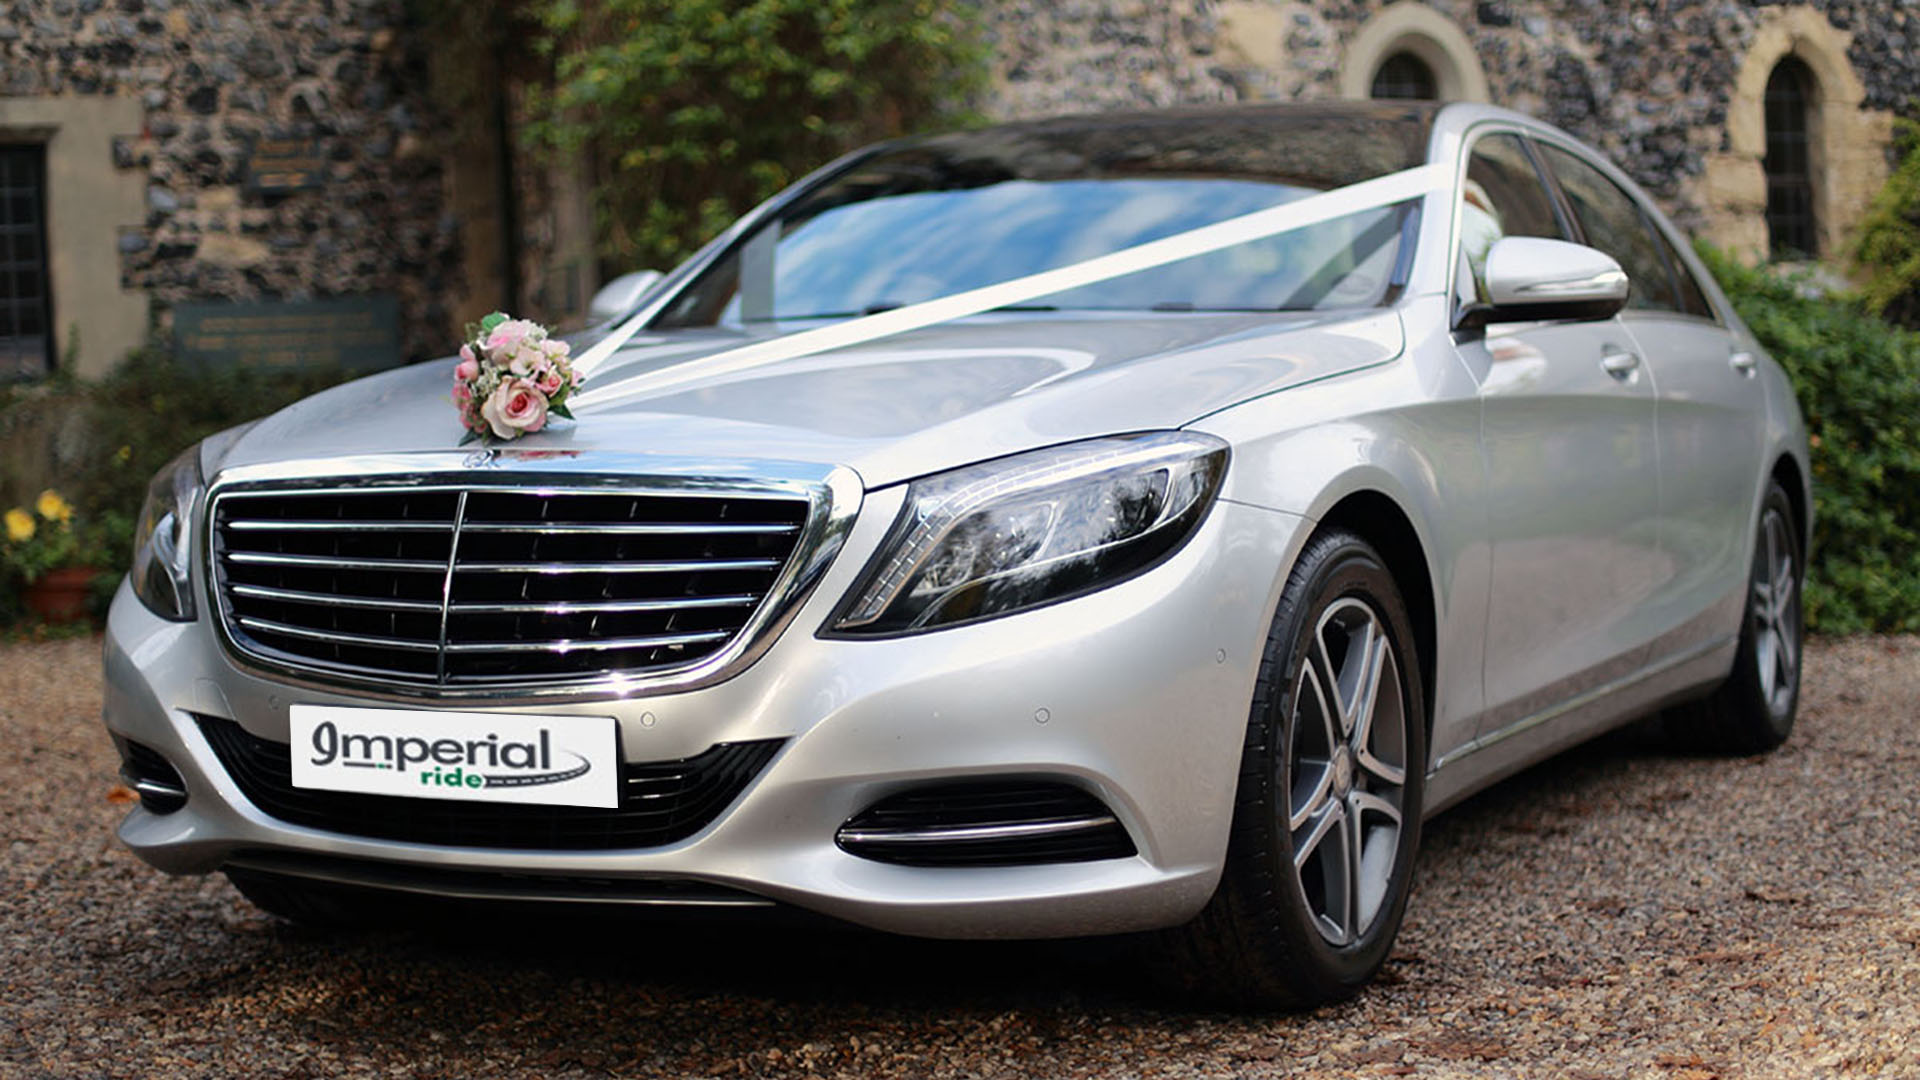 s-class-wedding-hire-in-hammersmith